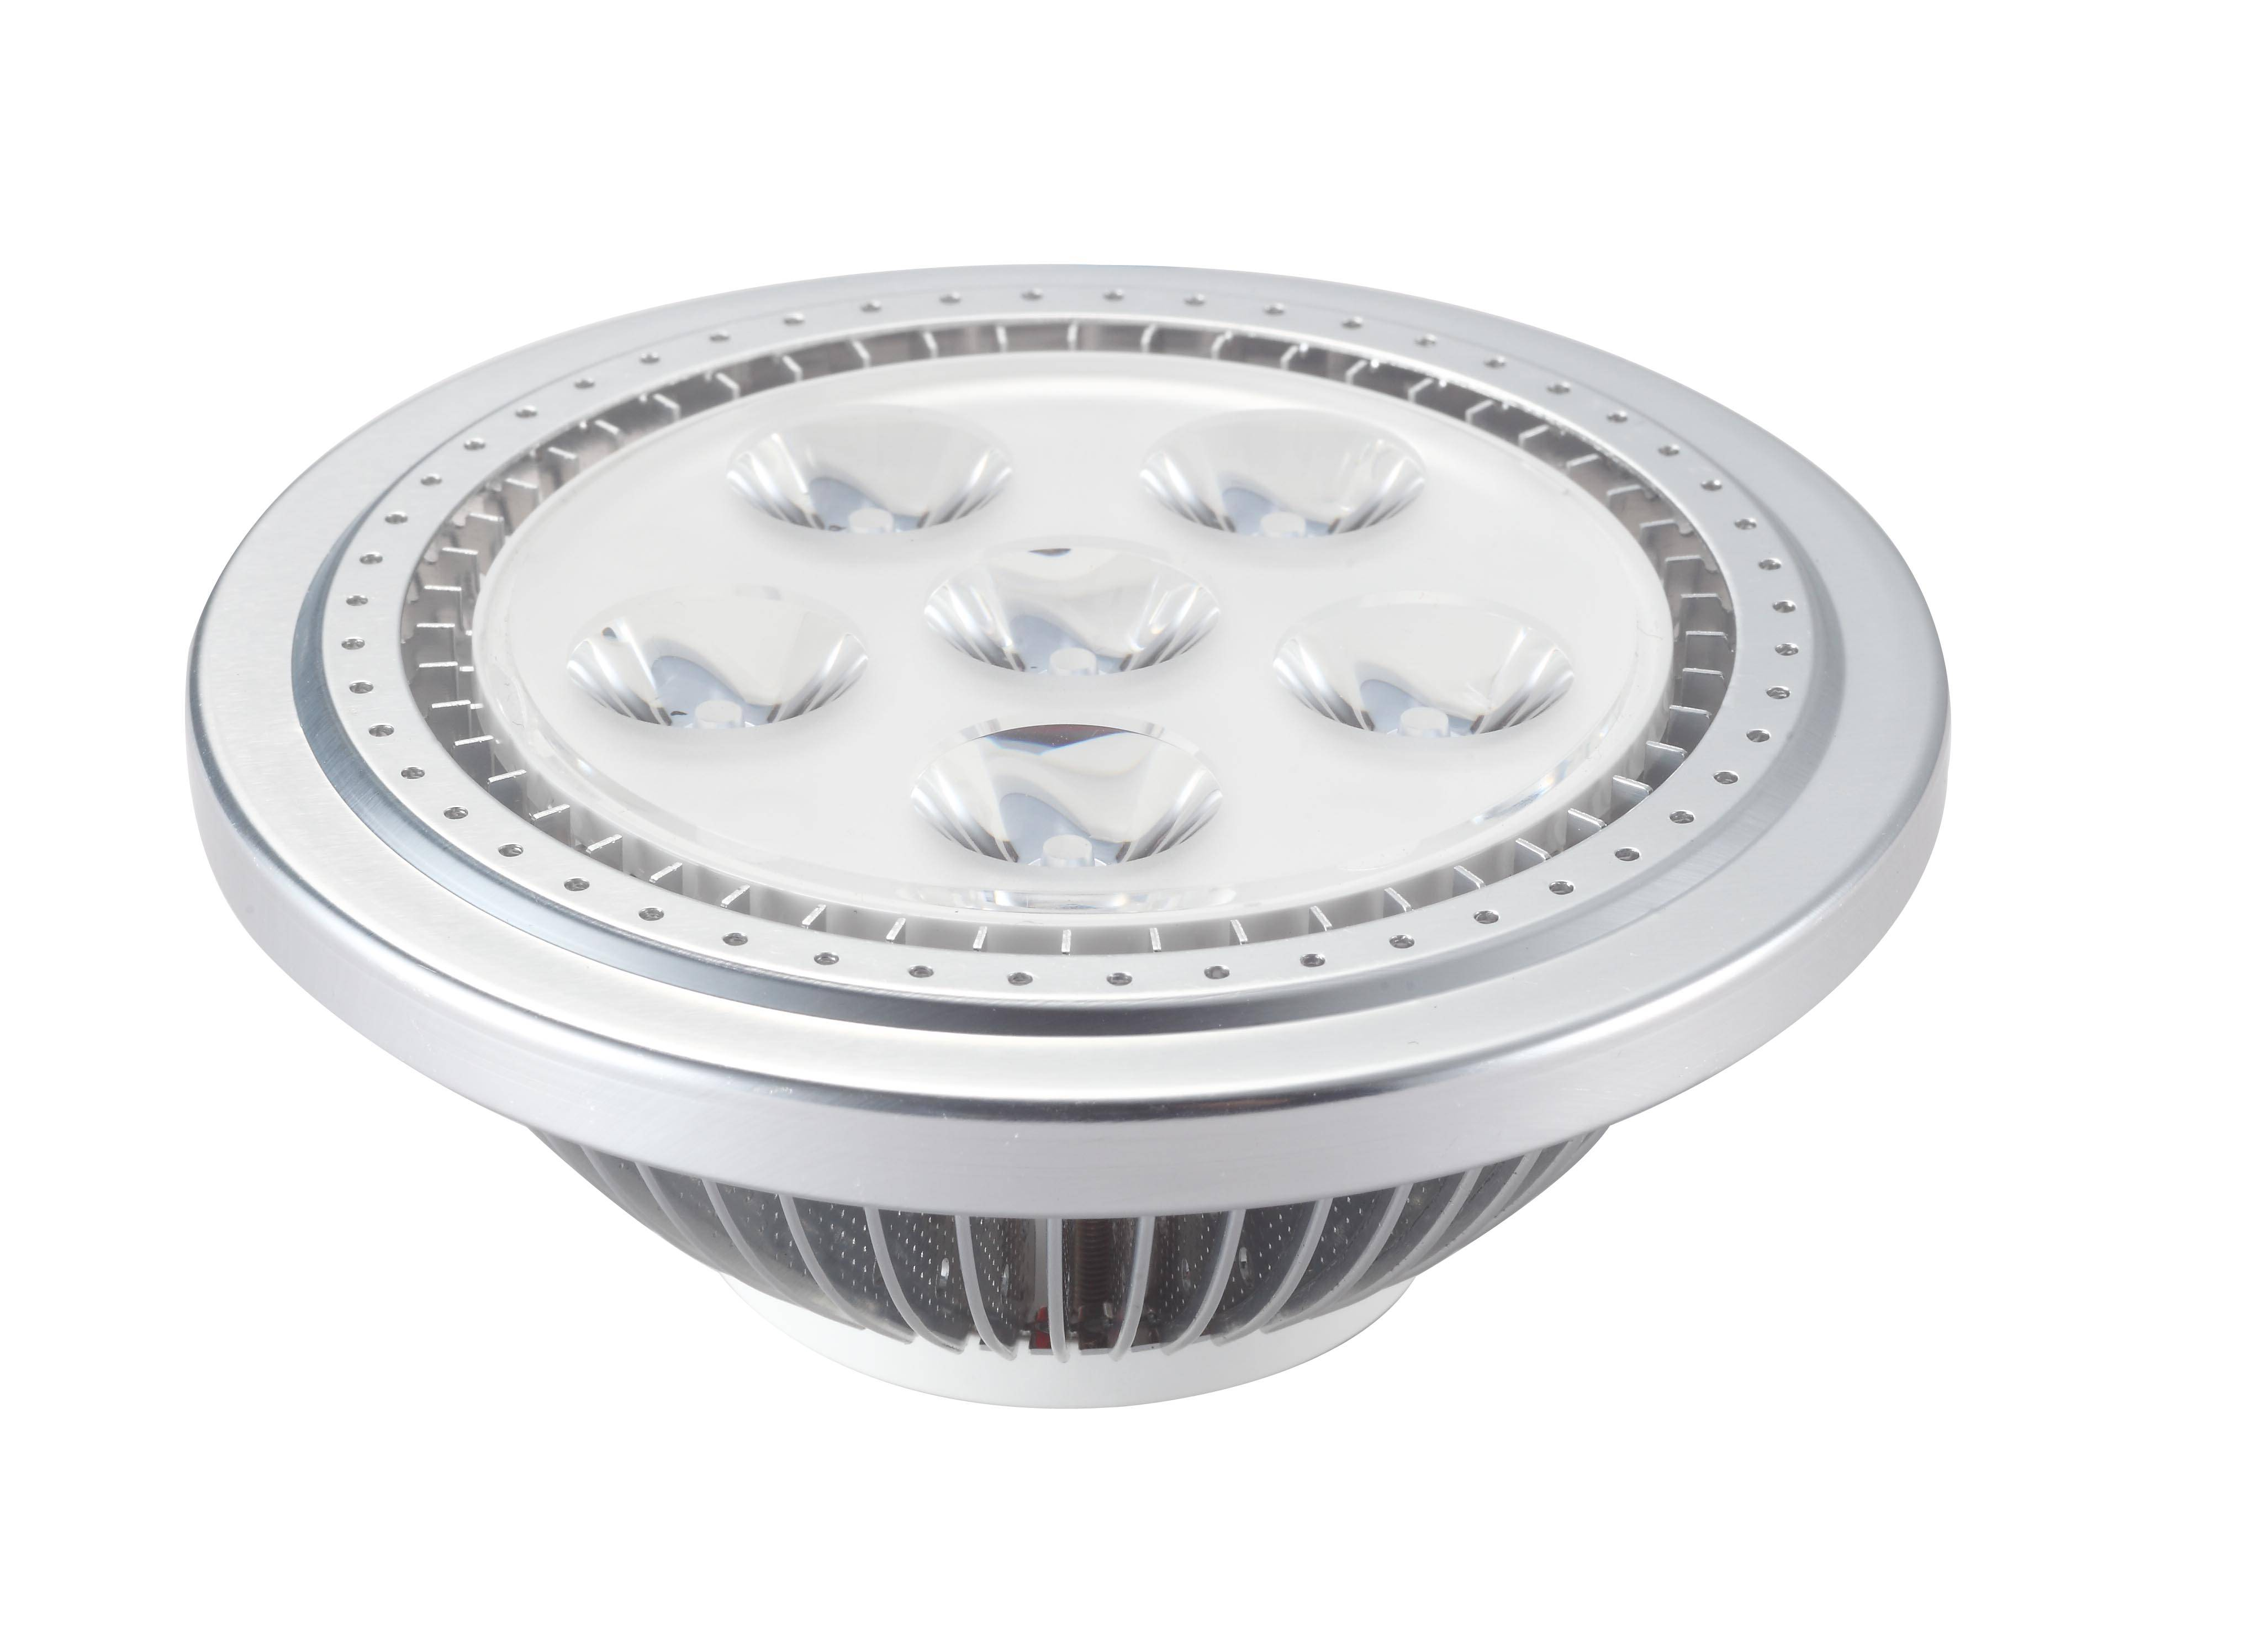 LED  AR111 light 12W with 6 LED chips